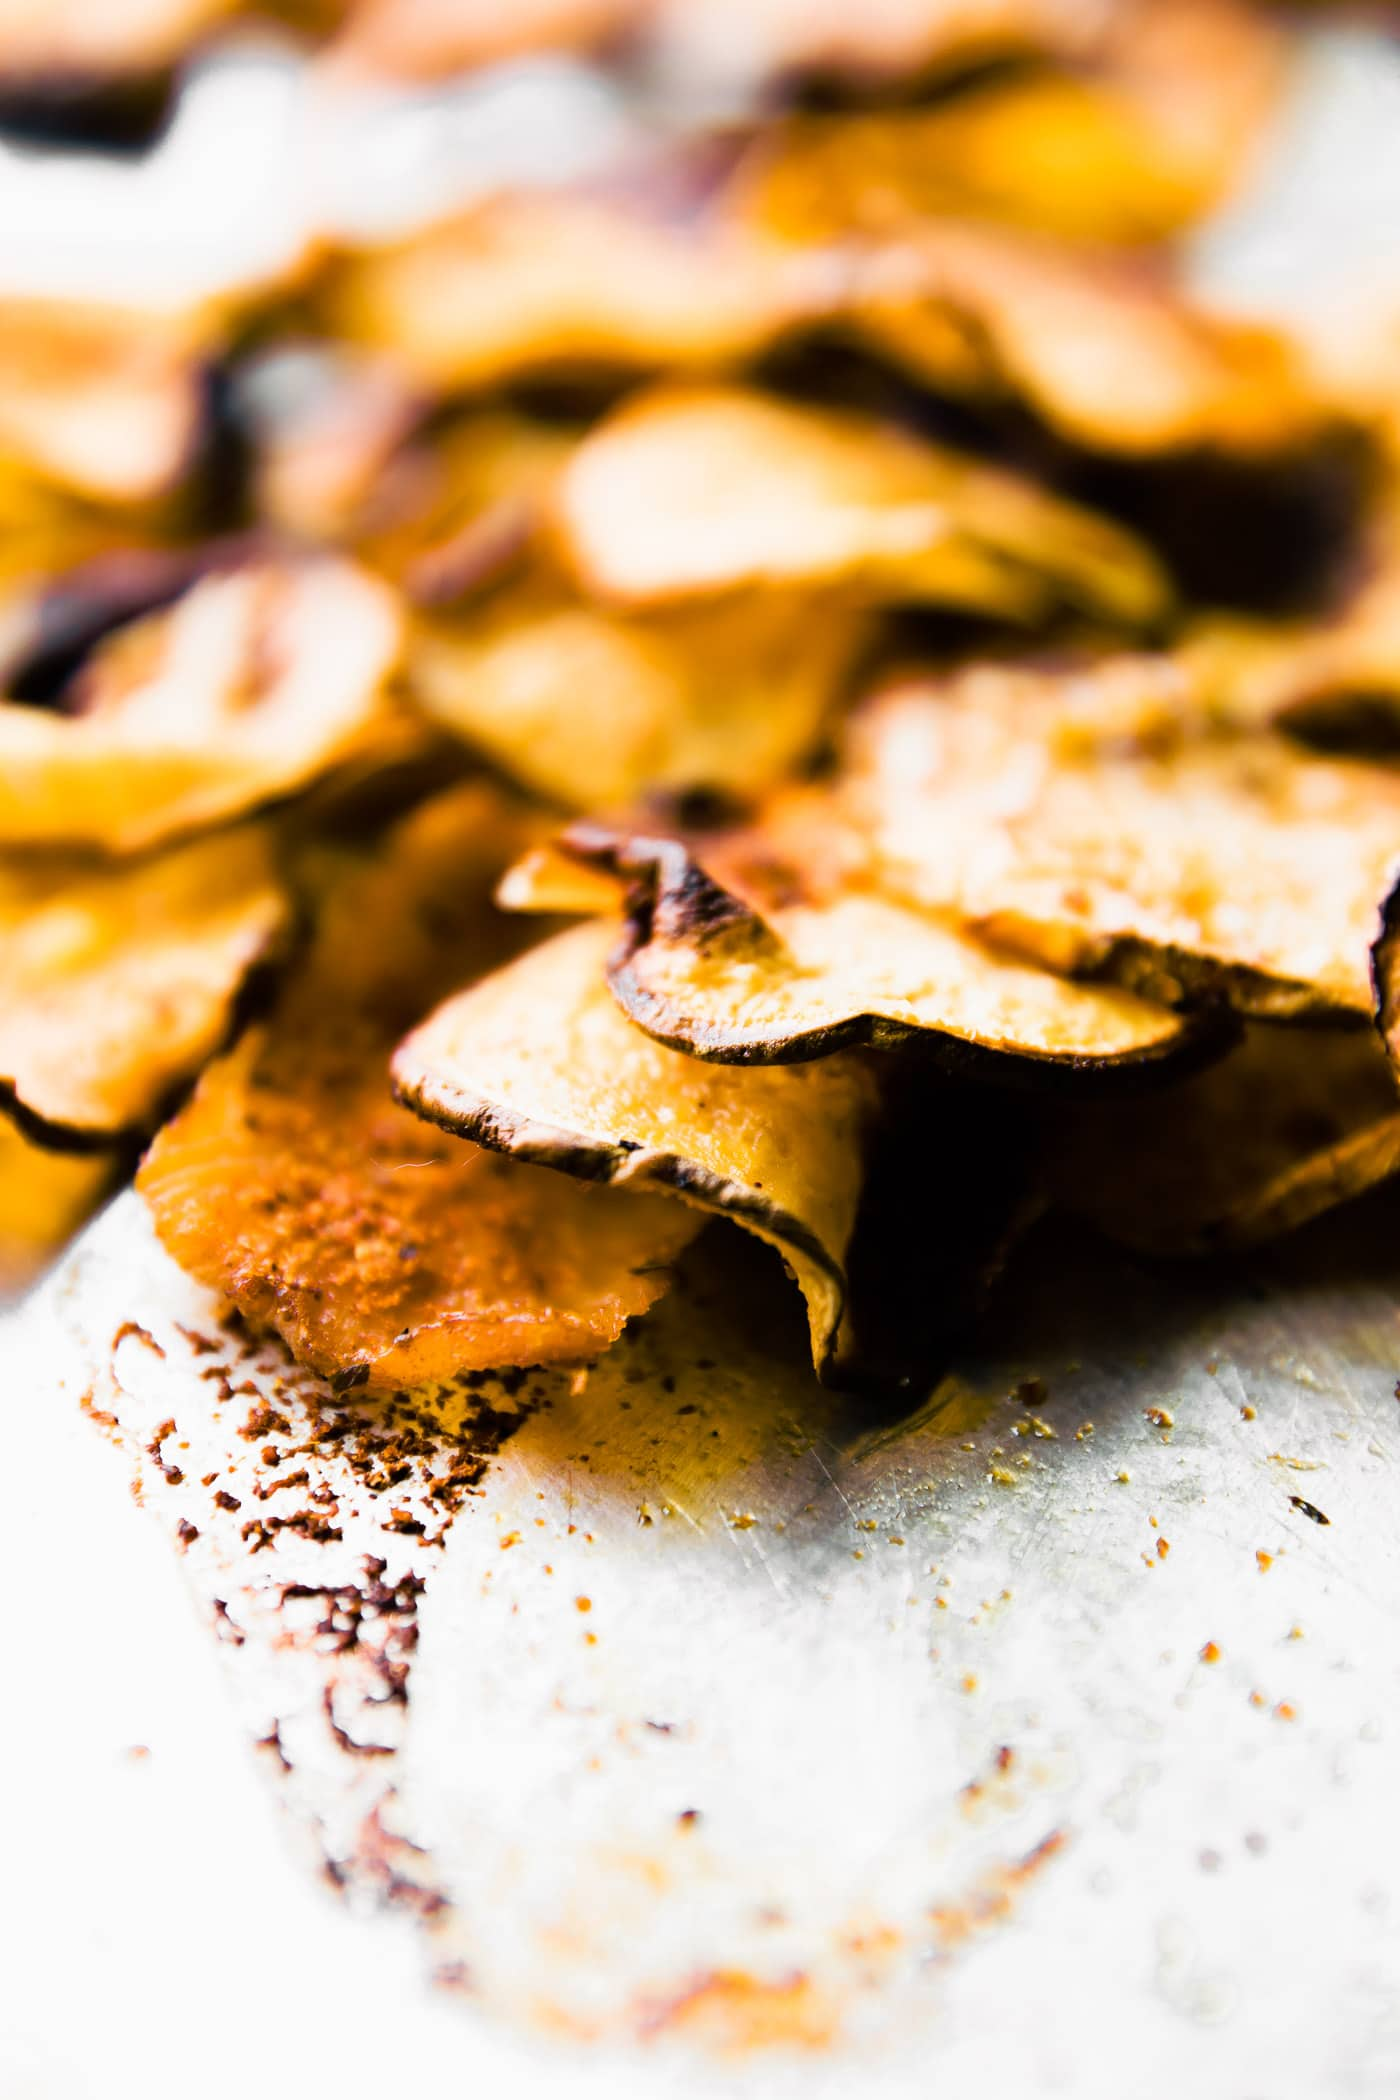 Gluten free BBQ Baked Rutabaga Chips! Healthy flavorful side dish for Summer BBQ's or any time of year! Rutabaga is a root vegetable that's easy to bake and cook with! These chips are super tasty, kid friendly, and naturally paleo/vegan! EAT UP!